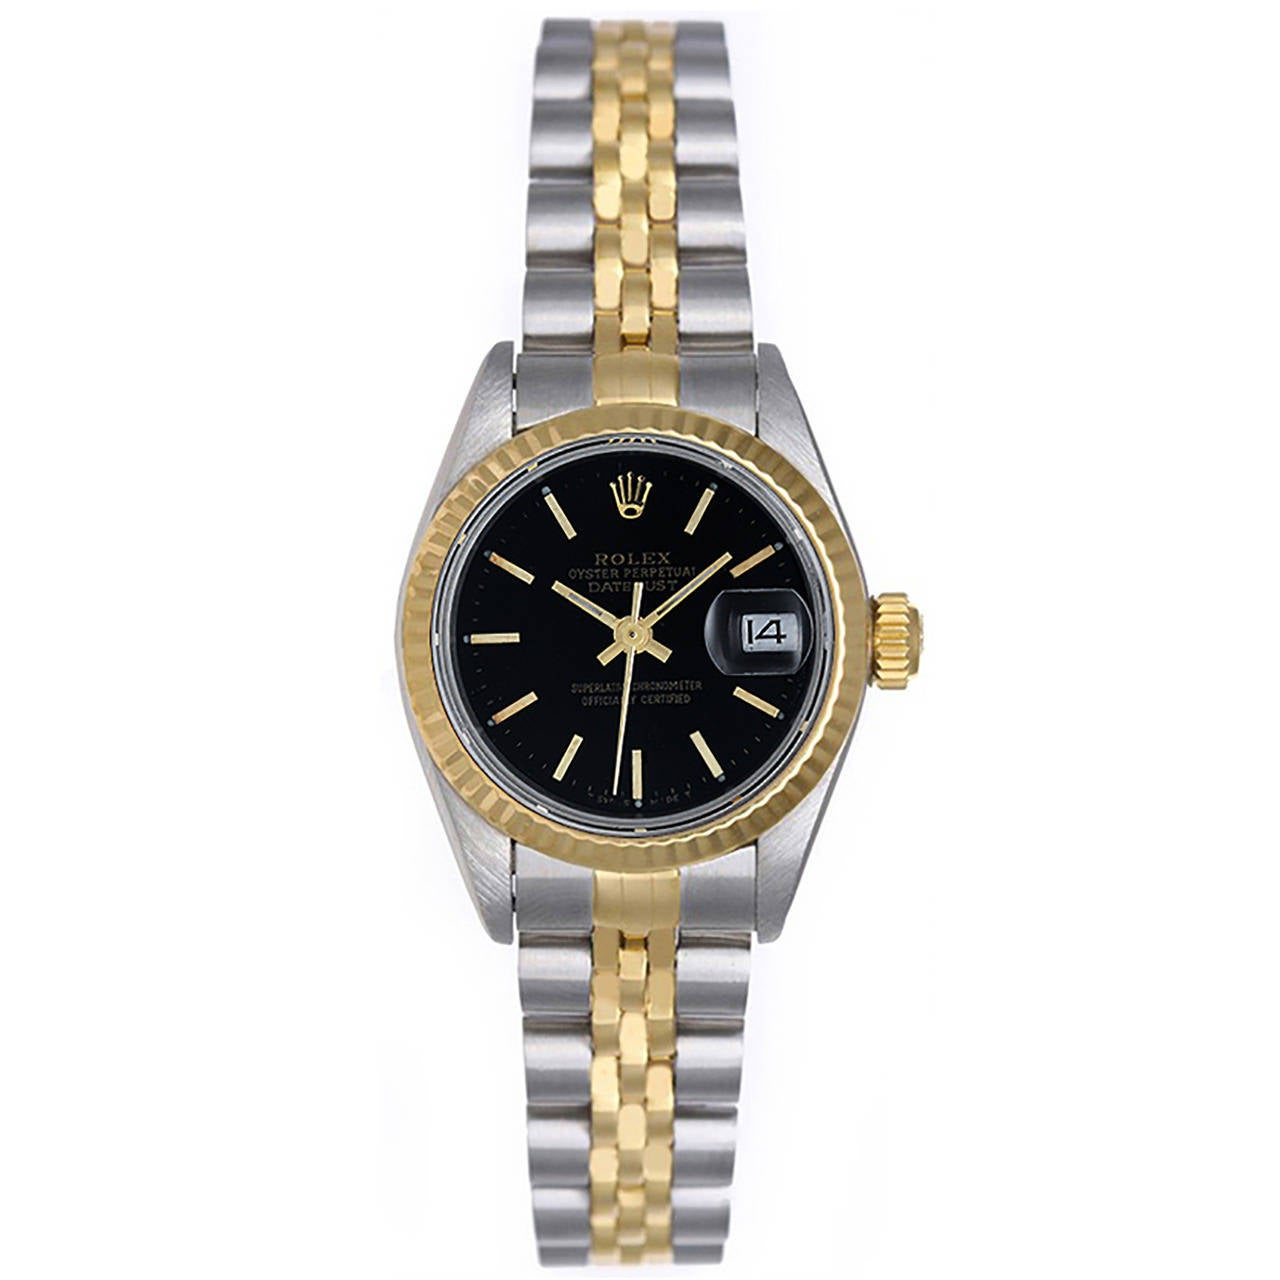 Rolex Lady's Yellow Gold Stainless Steel Datejust Wristwatch Ref 69173